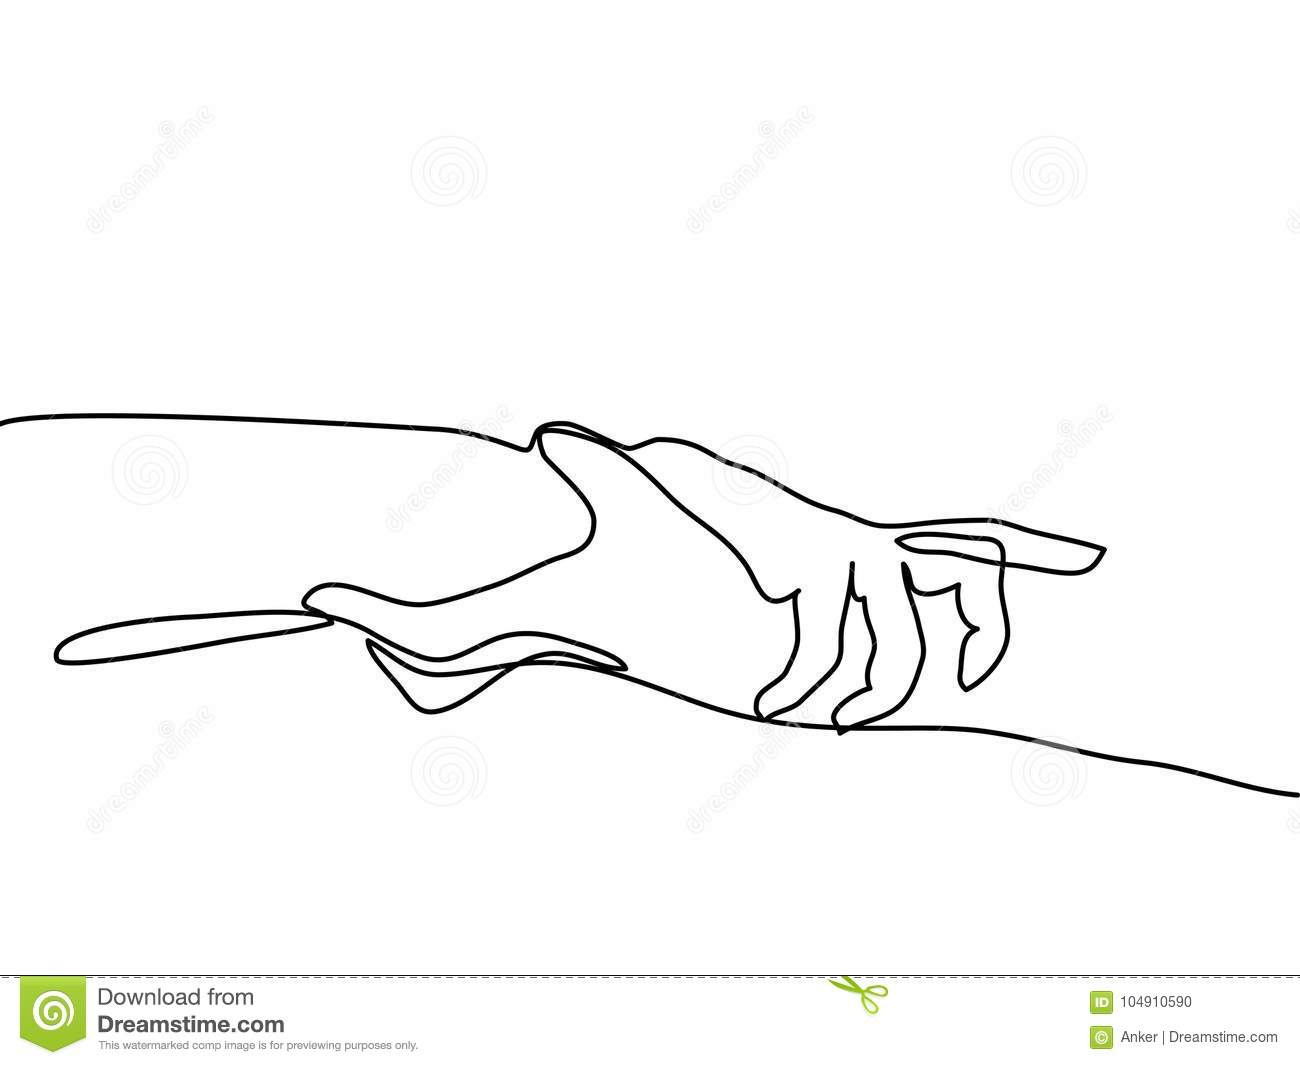 Line Drawing Holding Hands : Continuous line drawing of holding hands together stock